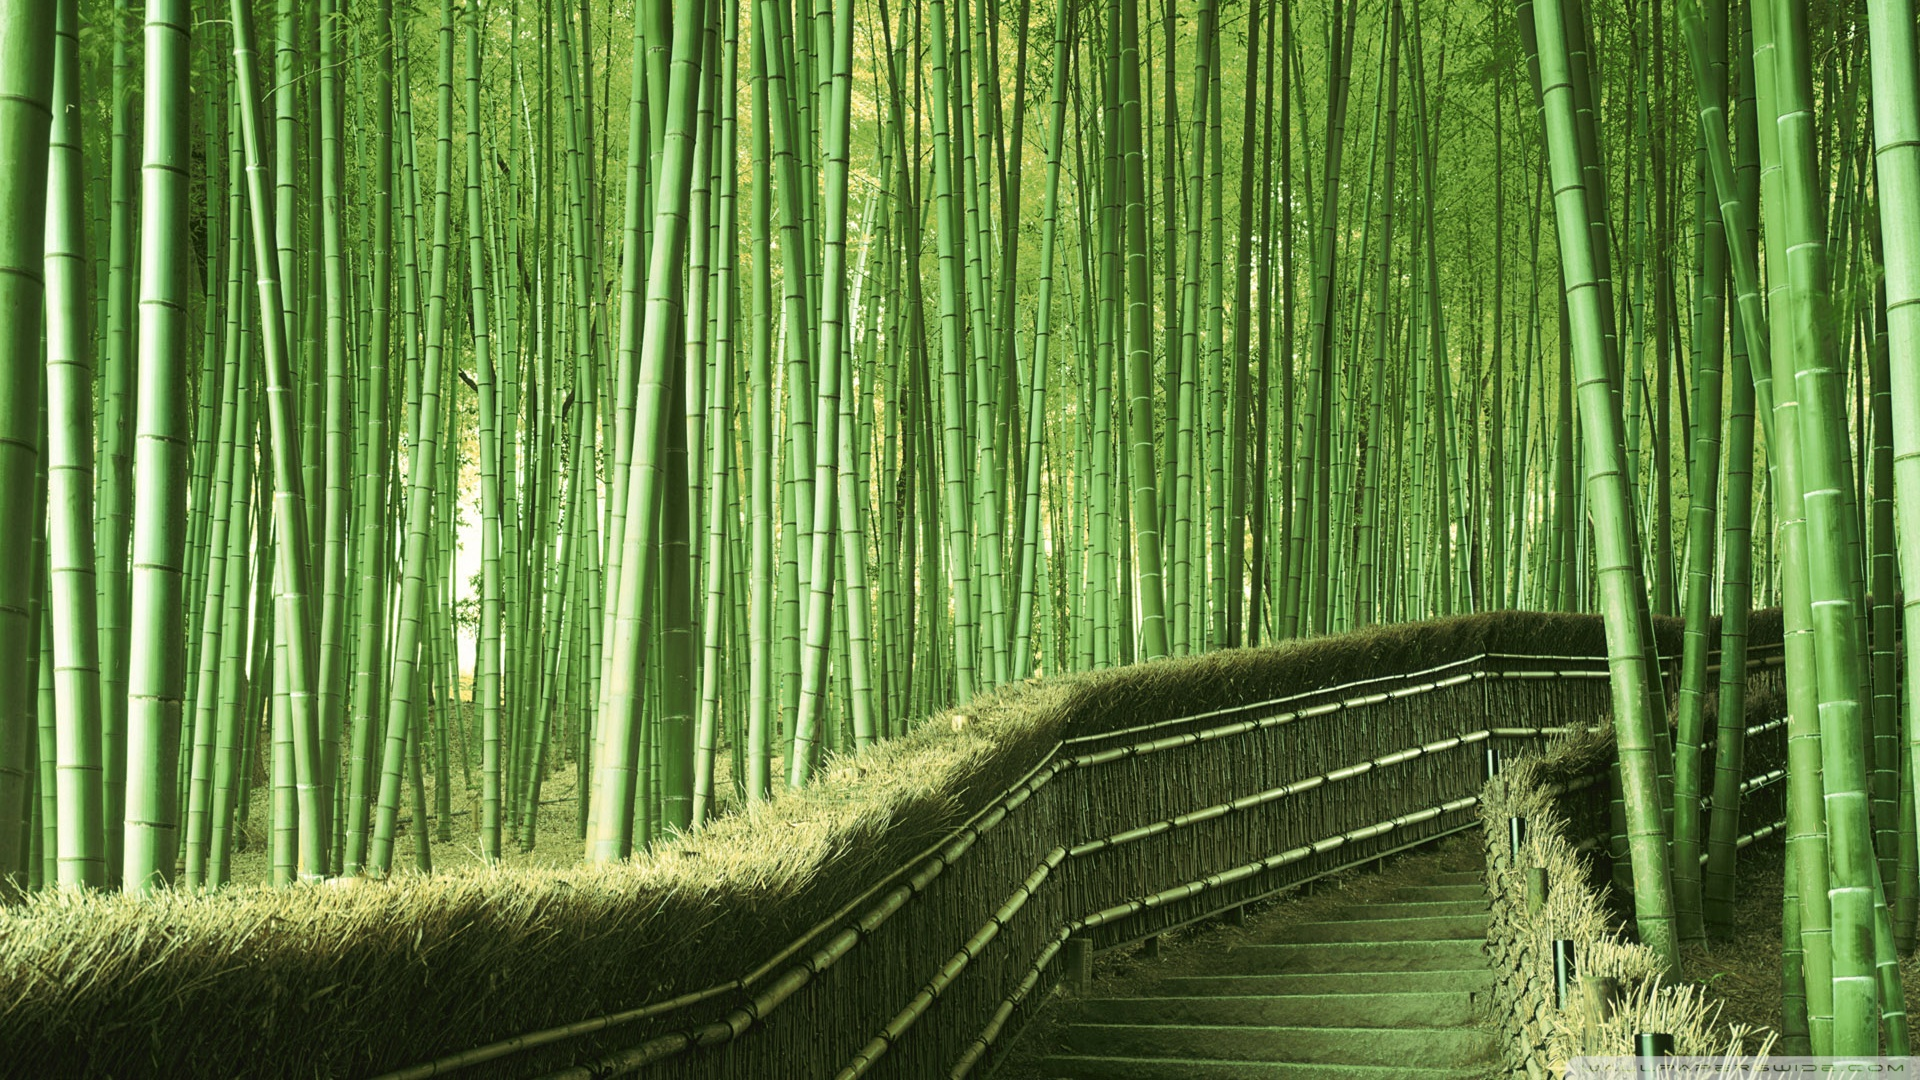 Drawn background bamboo #1